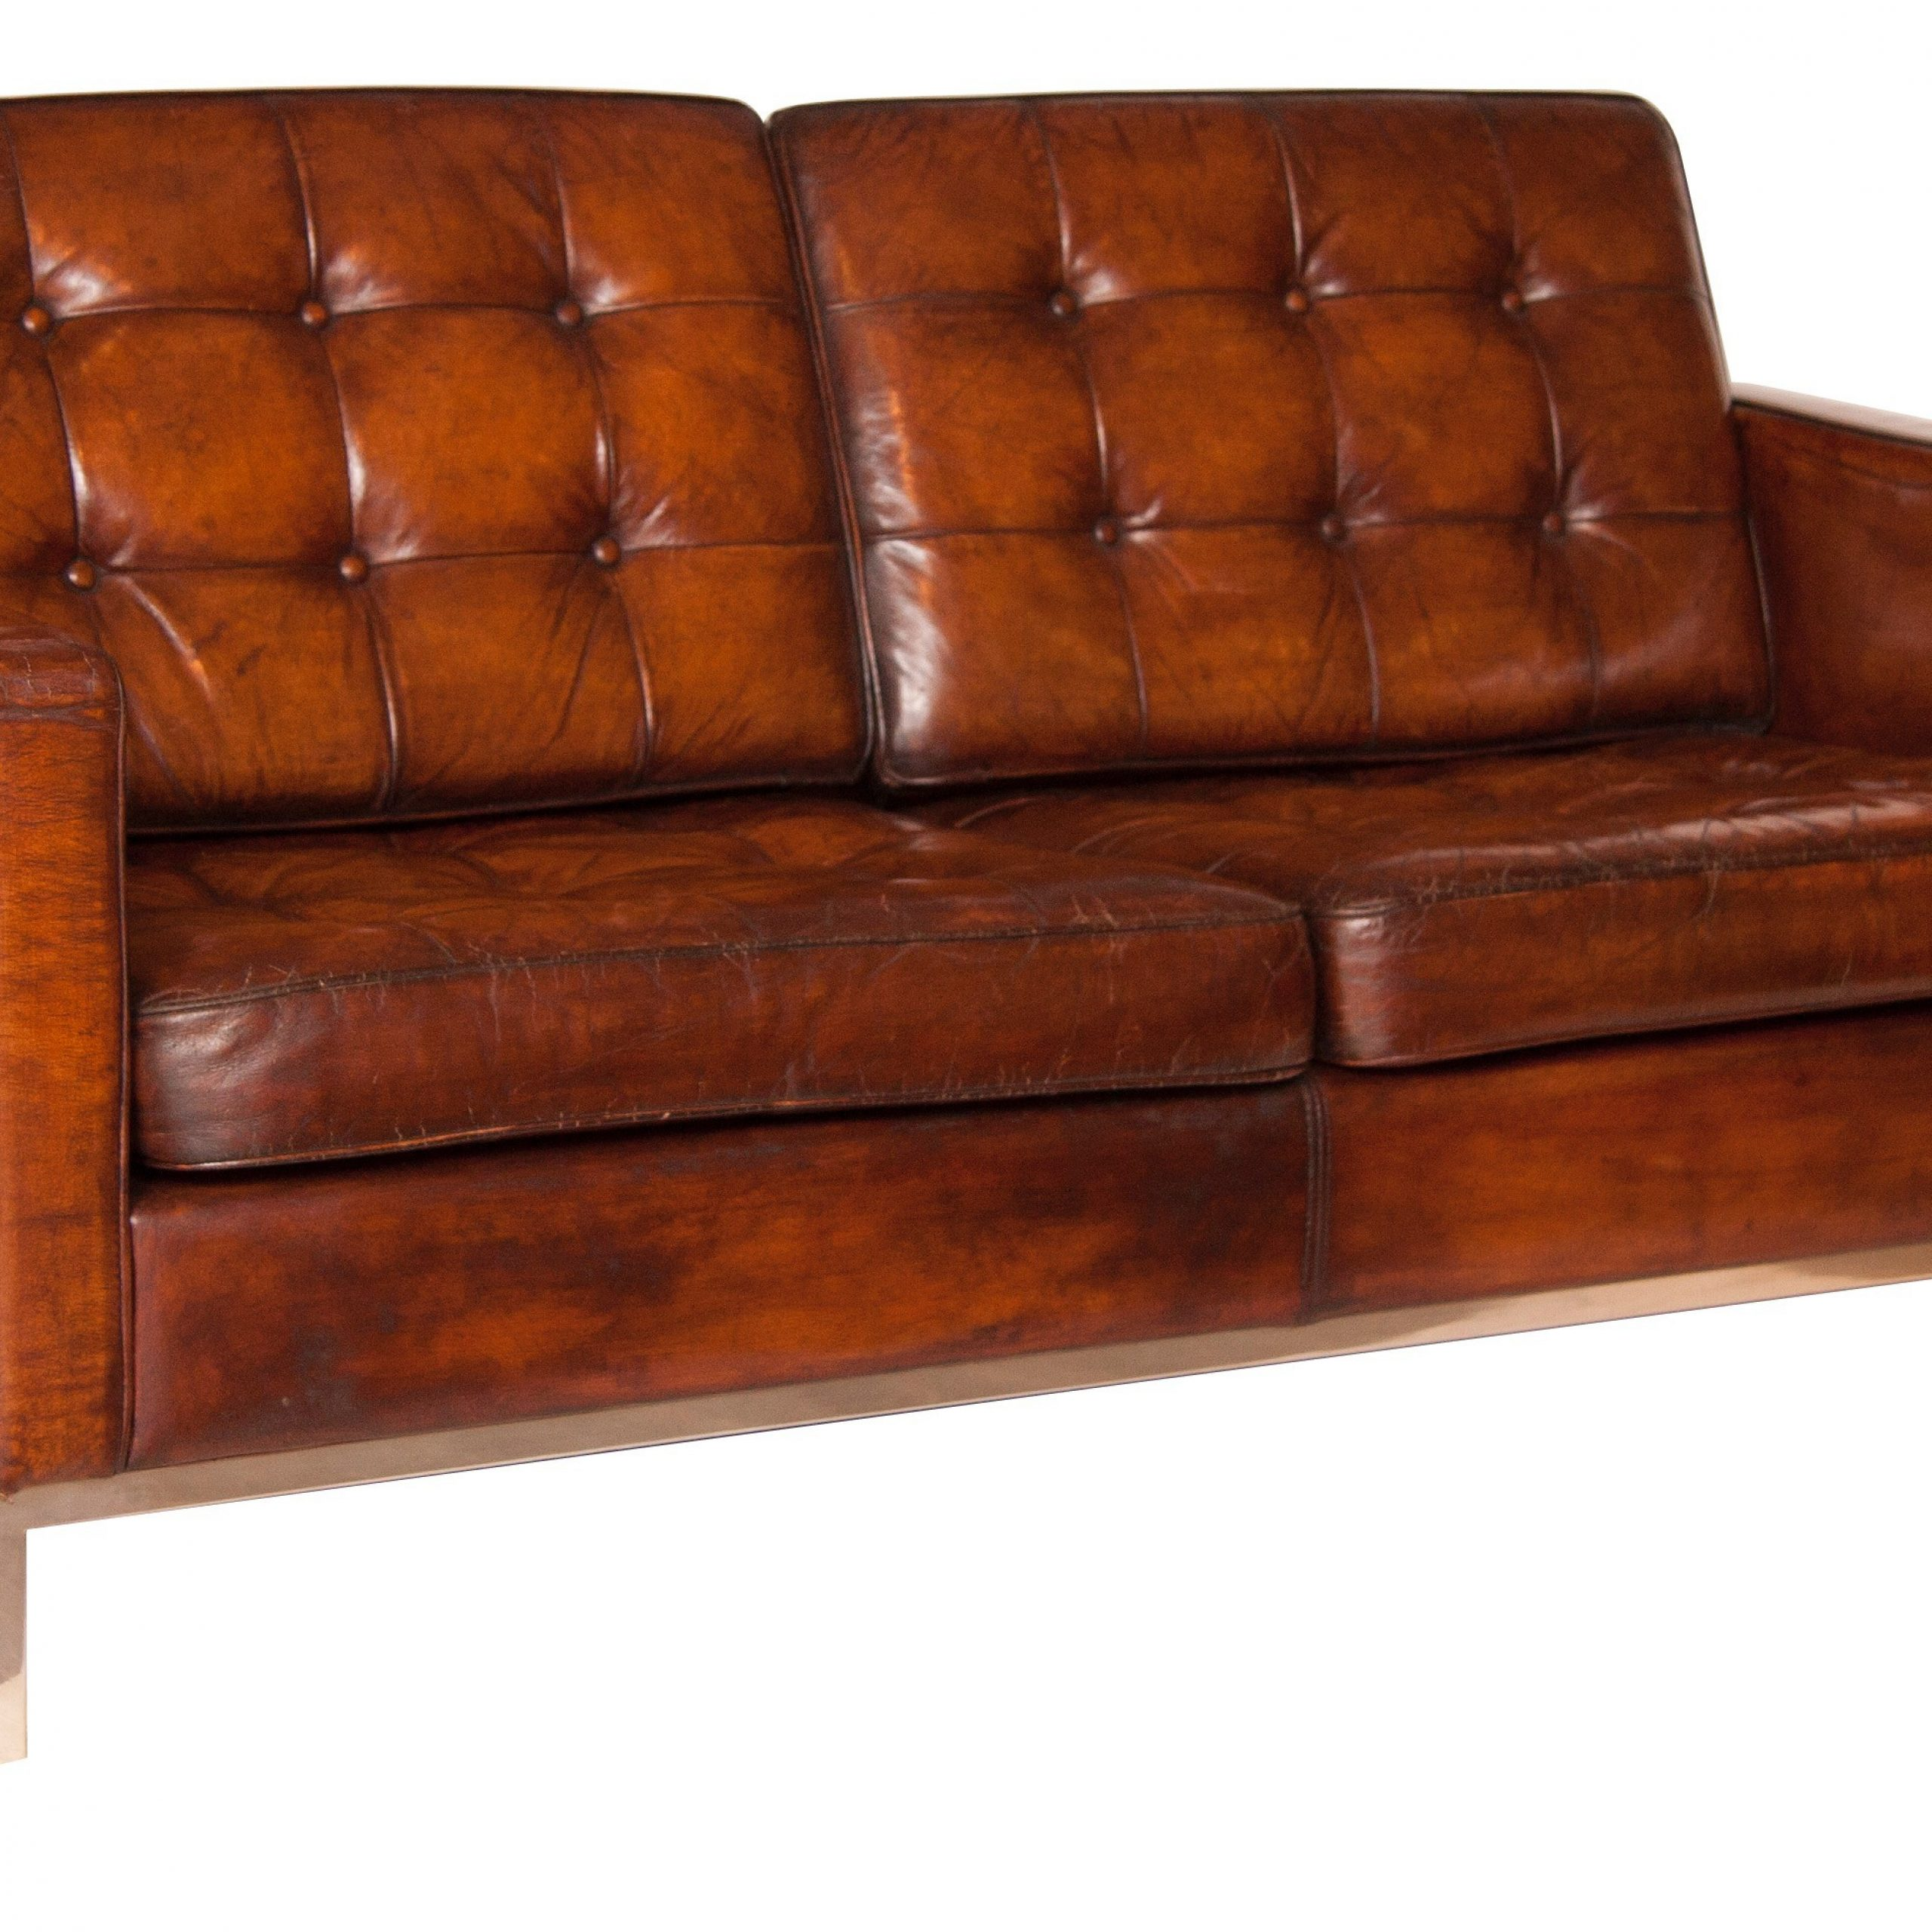 Mid Century Brown Leather Sofa,Florence Knoll – 1954 Inside Florence Mid Century Modern Right Sectional Sofas (View 6 of 15)